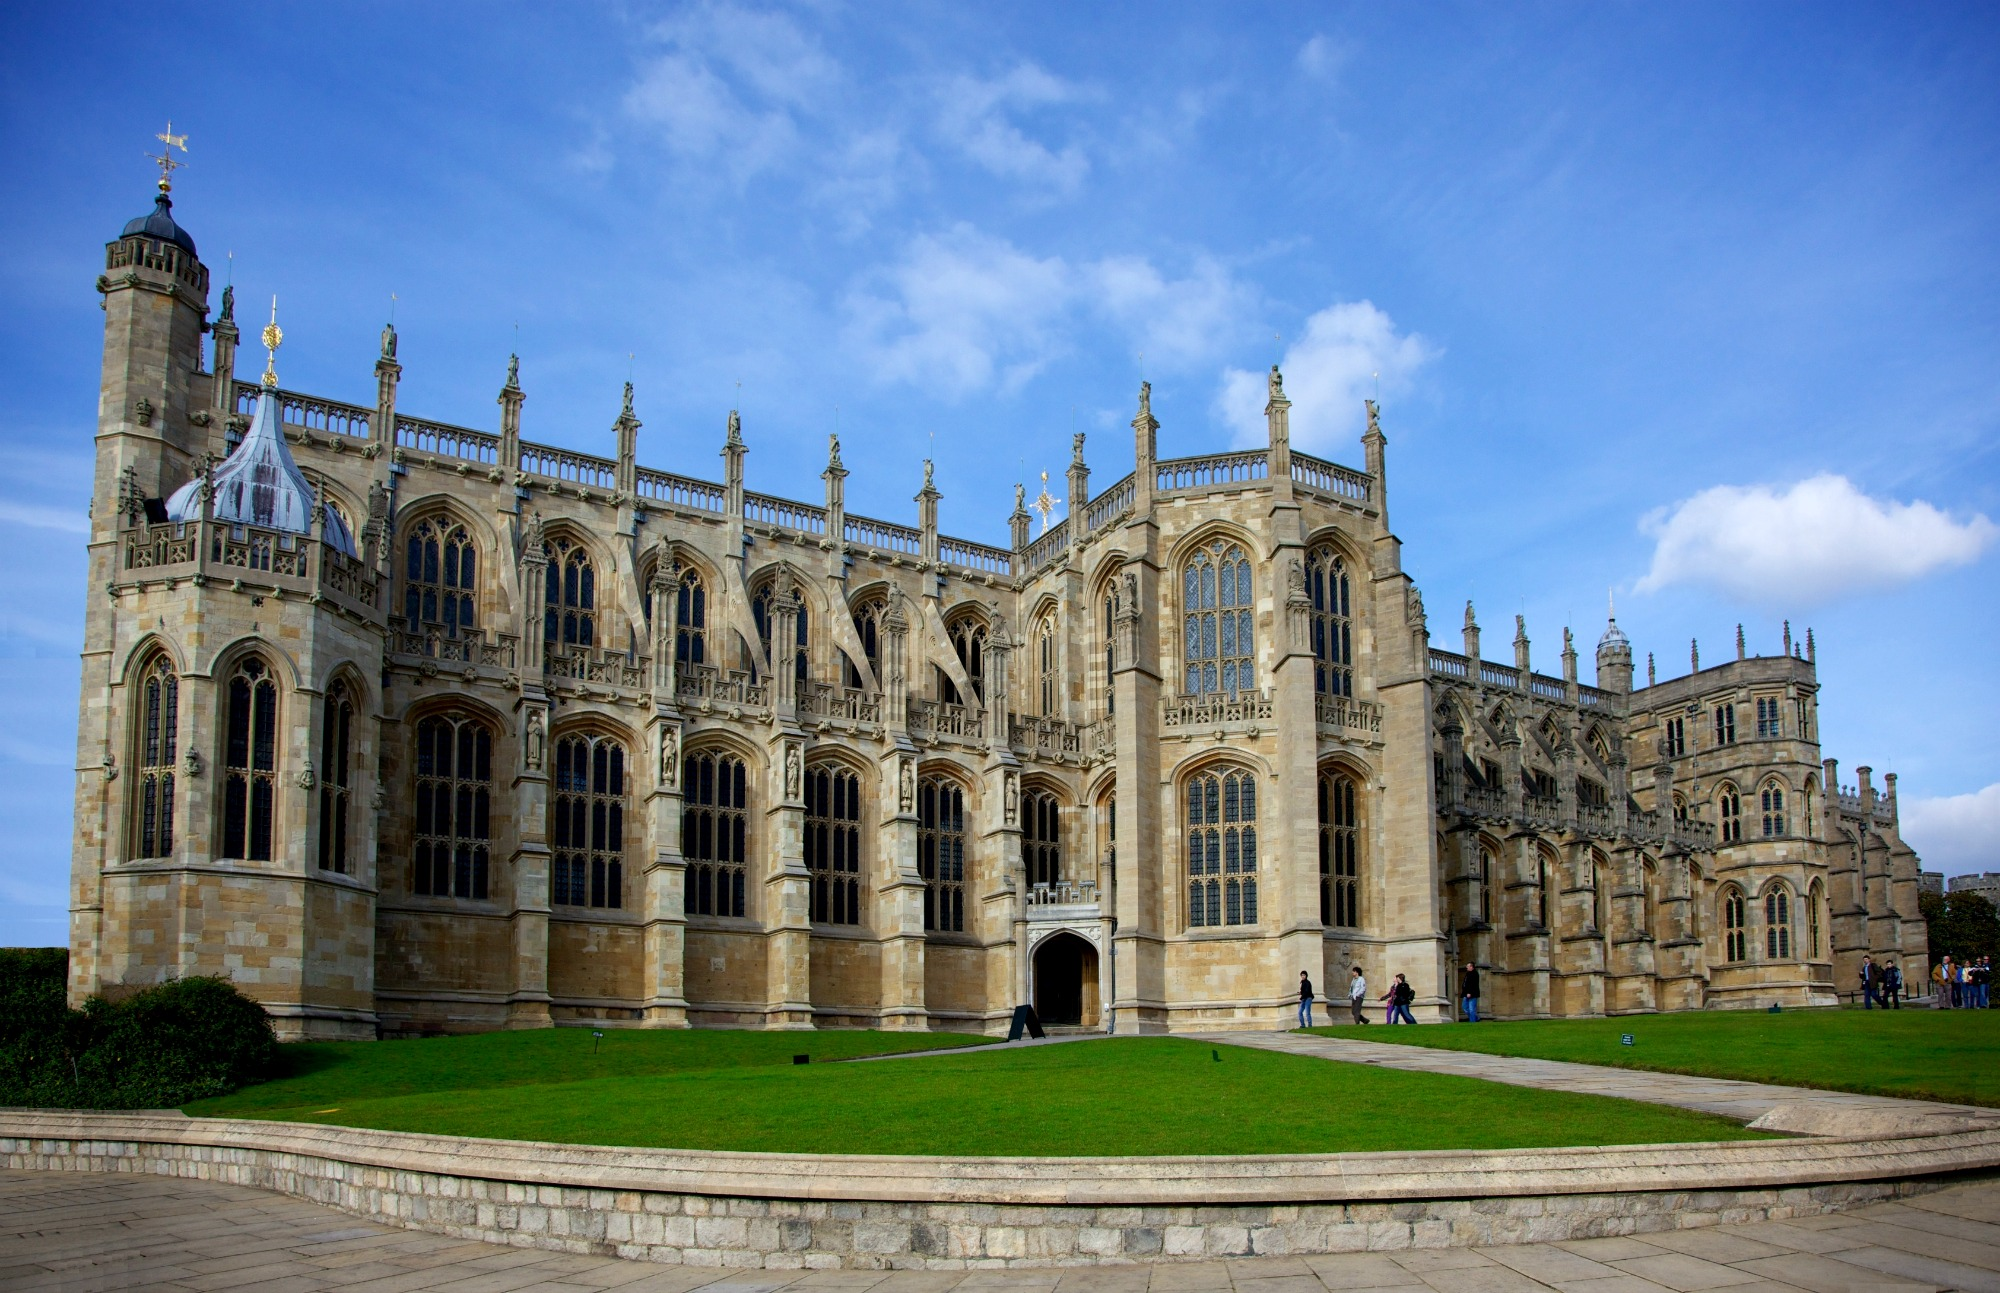 St. George's Chapel at Windsor Castle. Windsor, England. Photo by Aurelien Guichard from London.